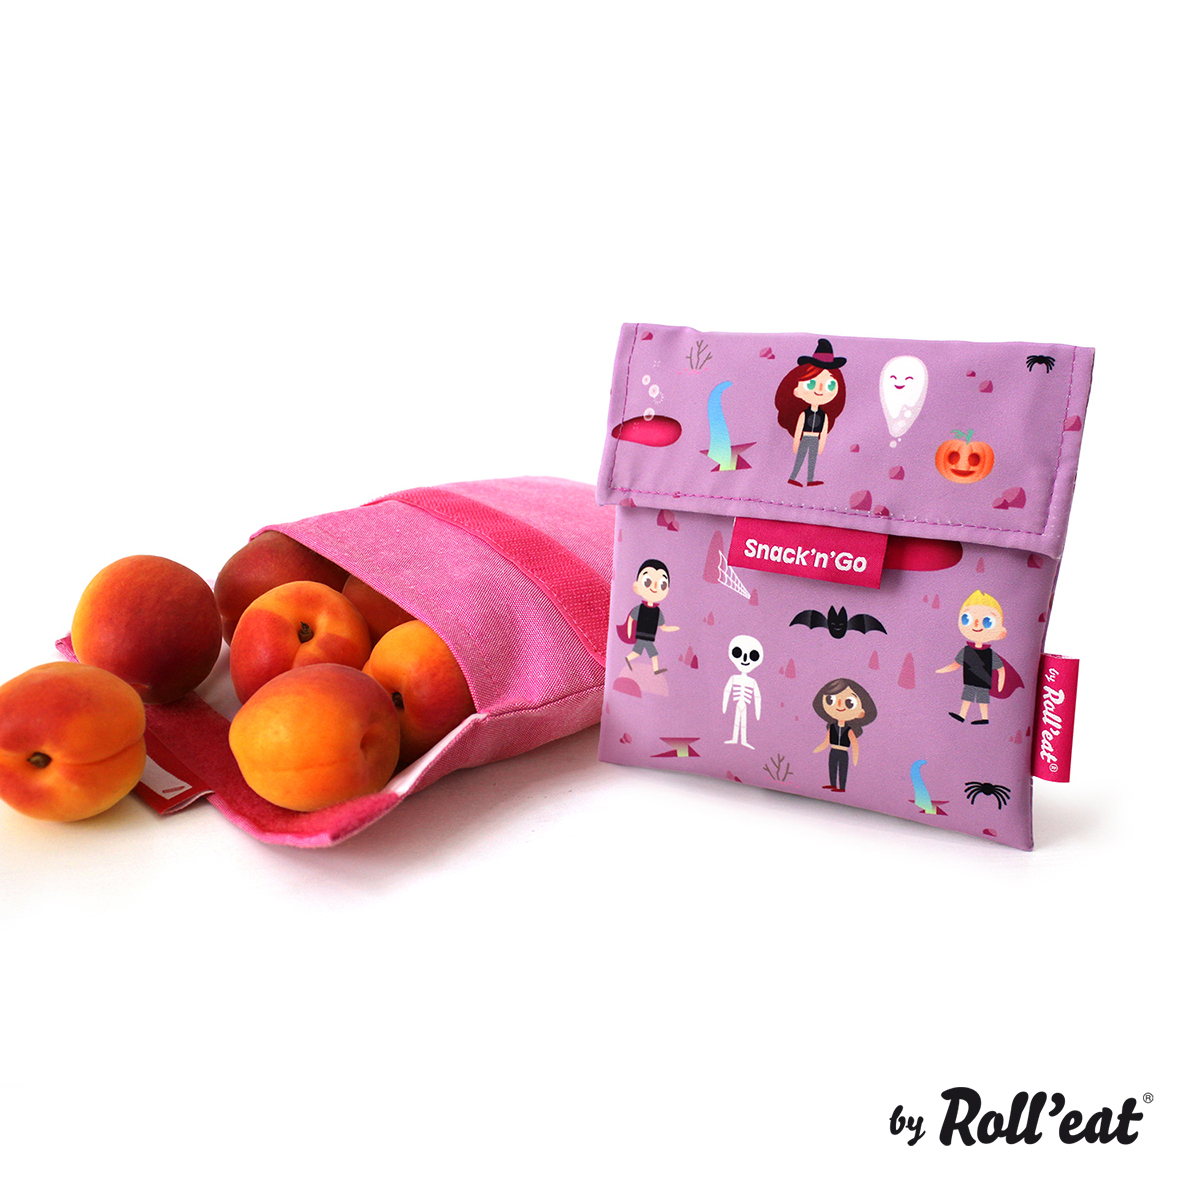 vuelta al cole snackngo-kids-fantasy-fruit-rolleat